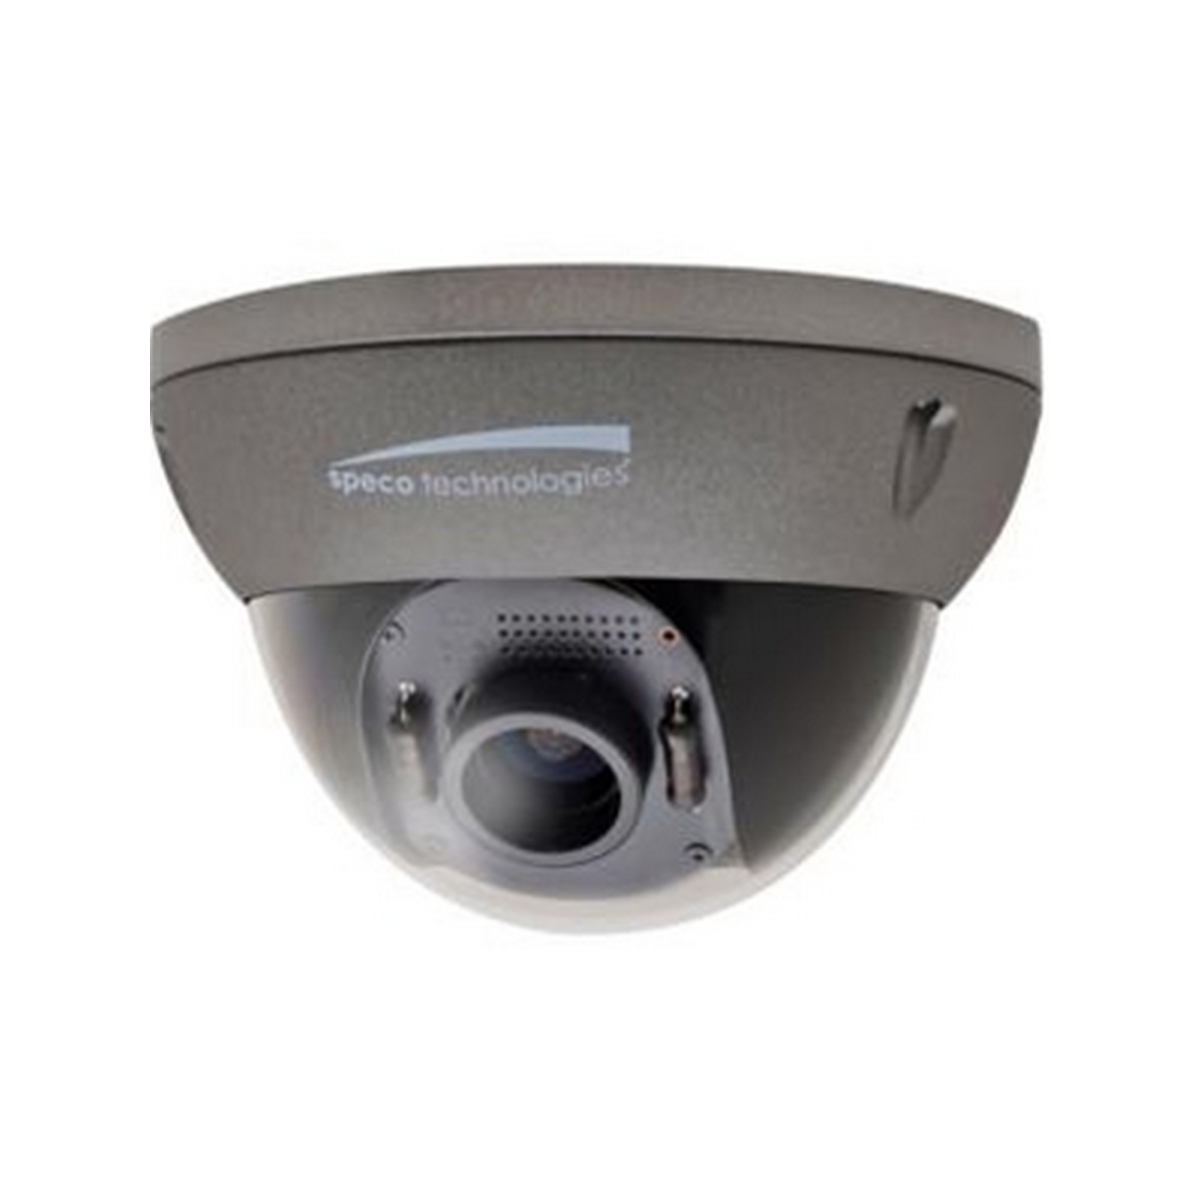 Intensifier IP Full HD 2MP Vandal Dome, 2.8-11mm motorized lens, grey housing Speco O2iD4M